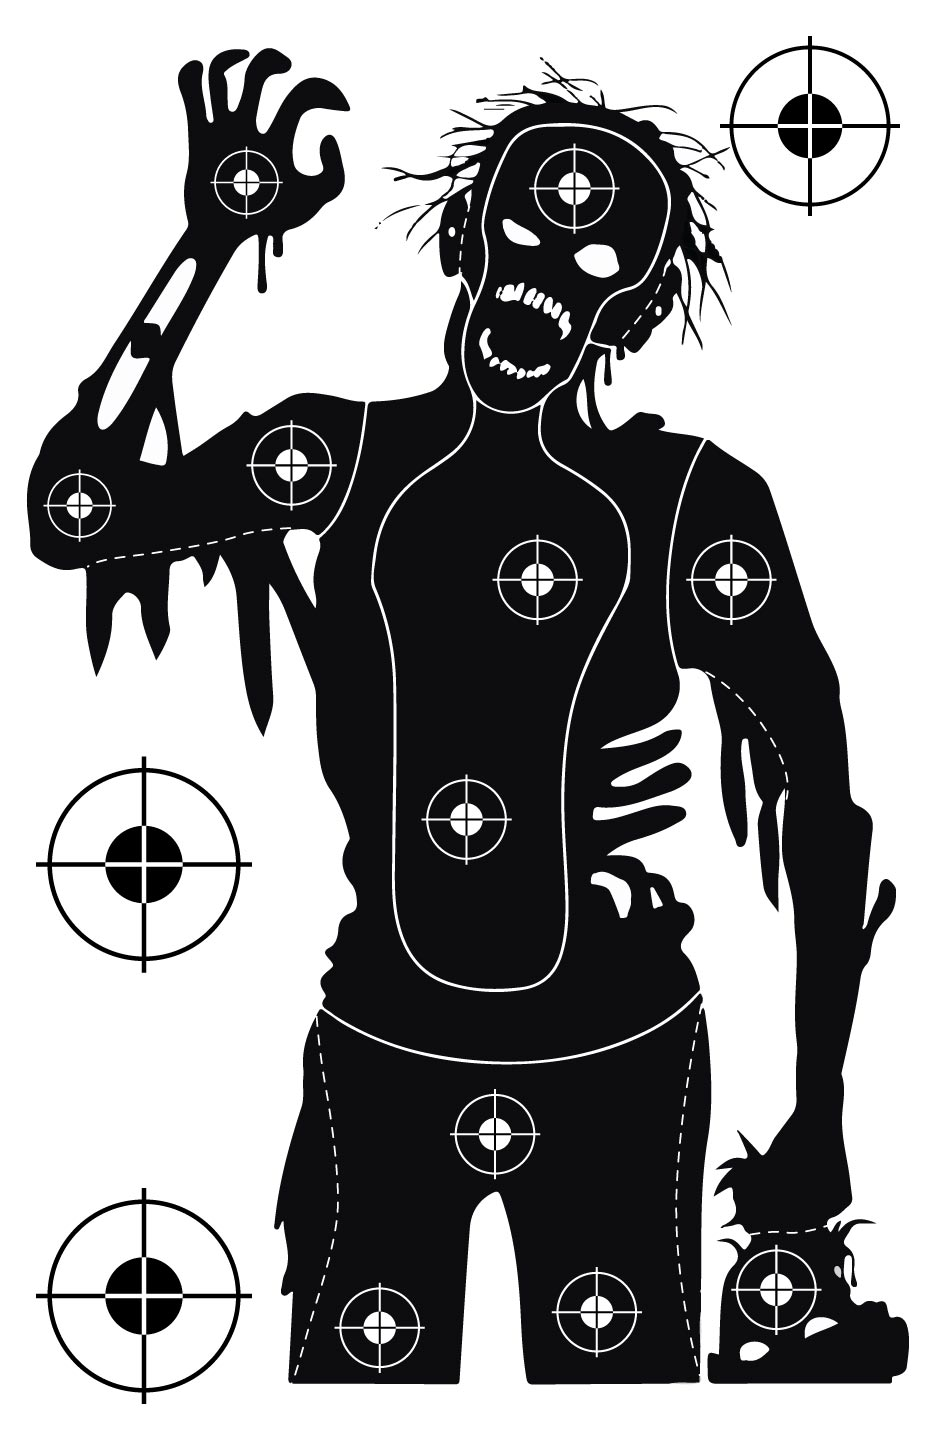 Single Zombie Shooting Target at PhotosAndFun.com